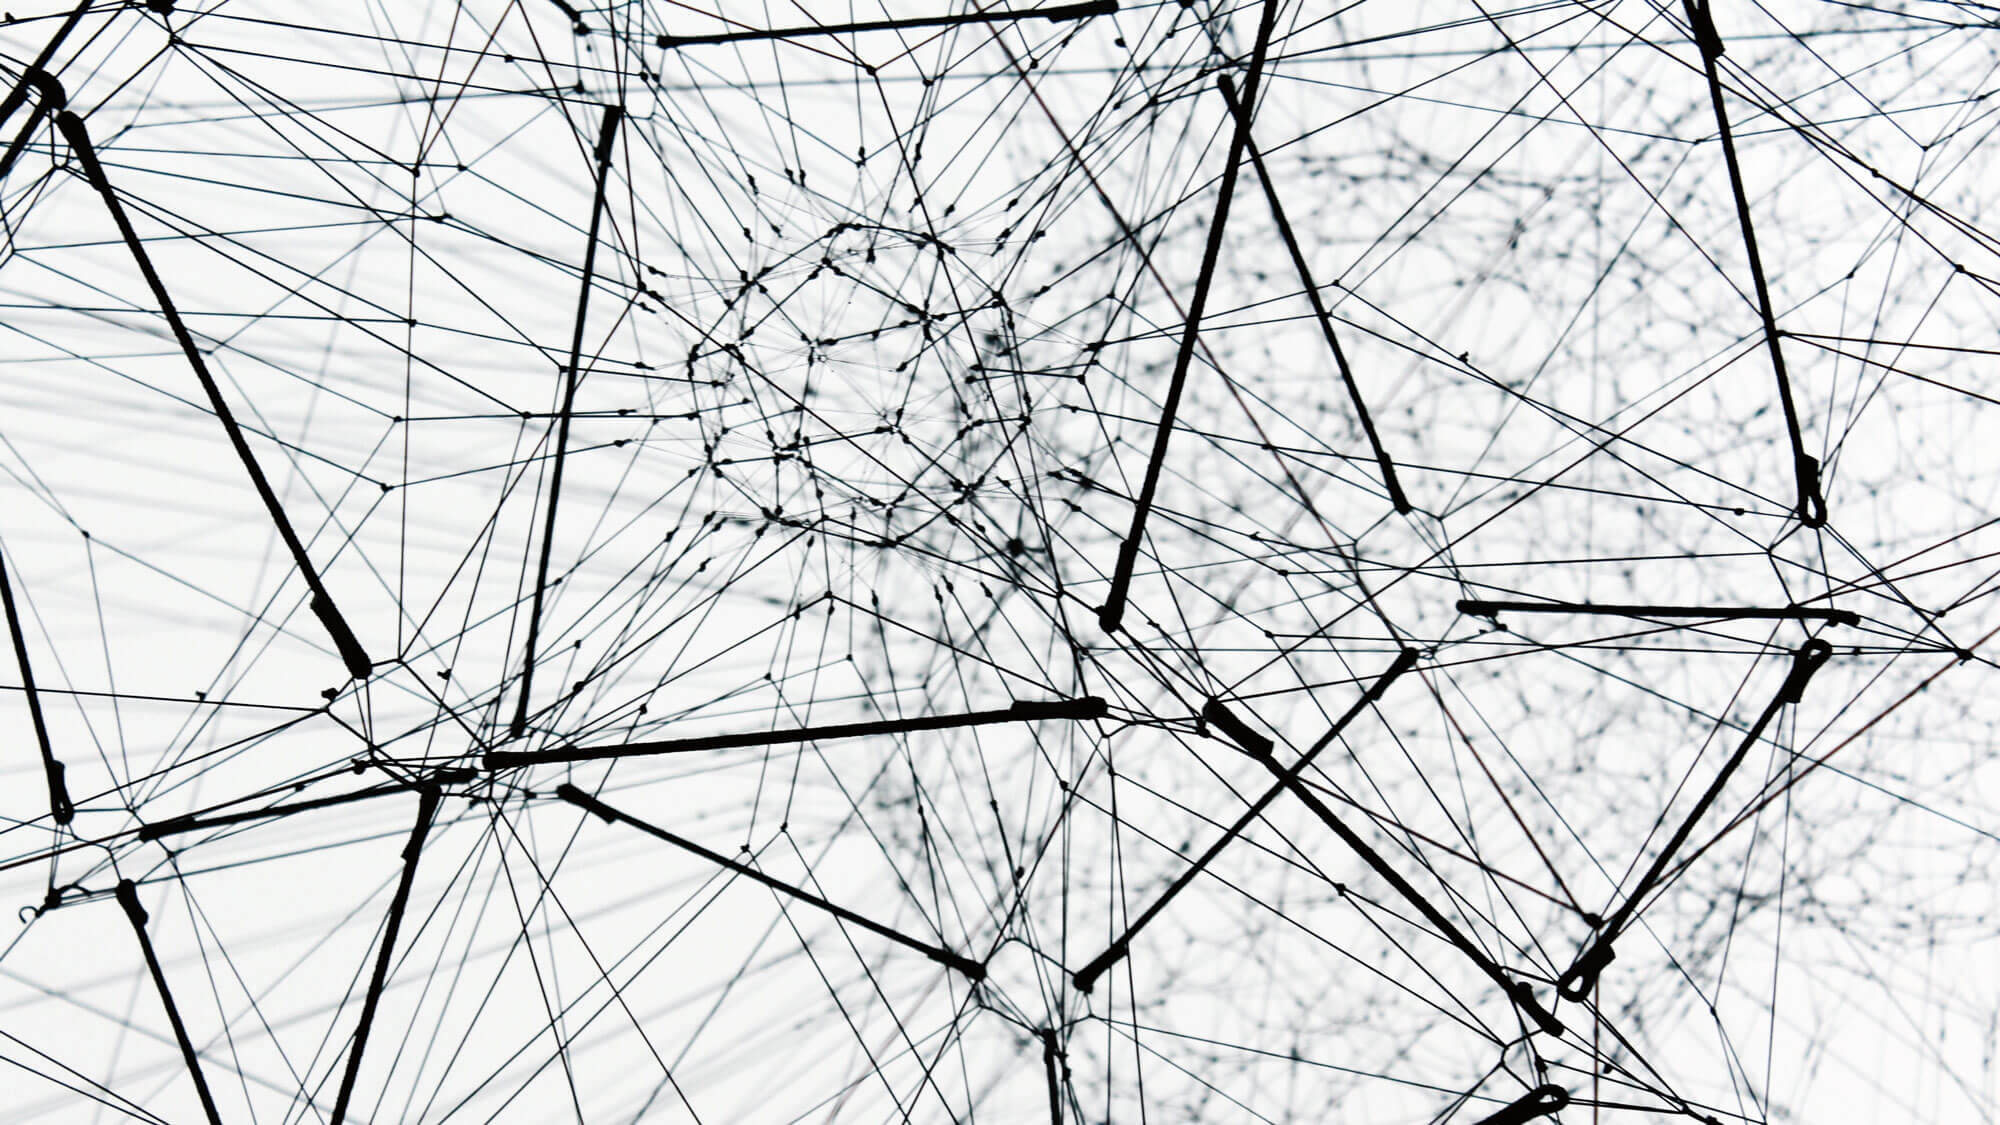 Networks are one of the ten innovation types